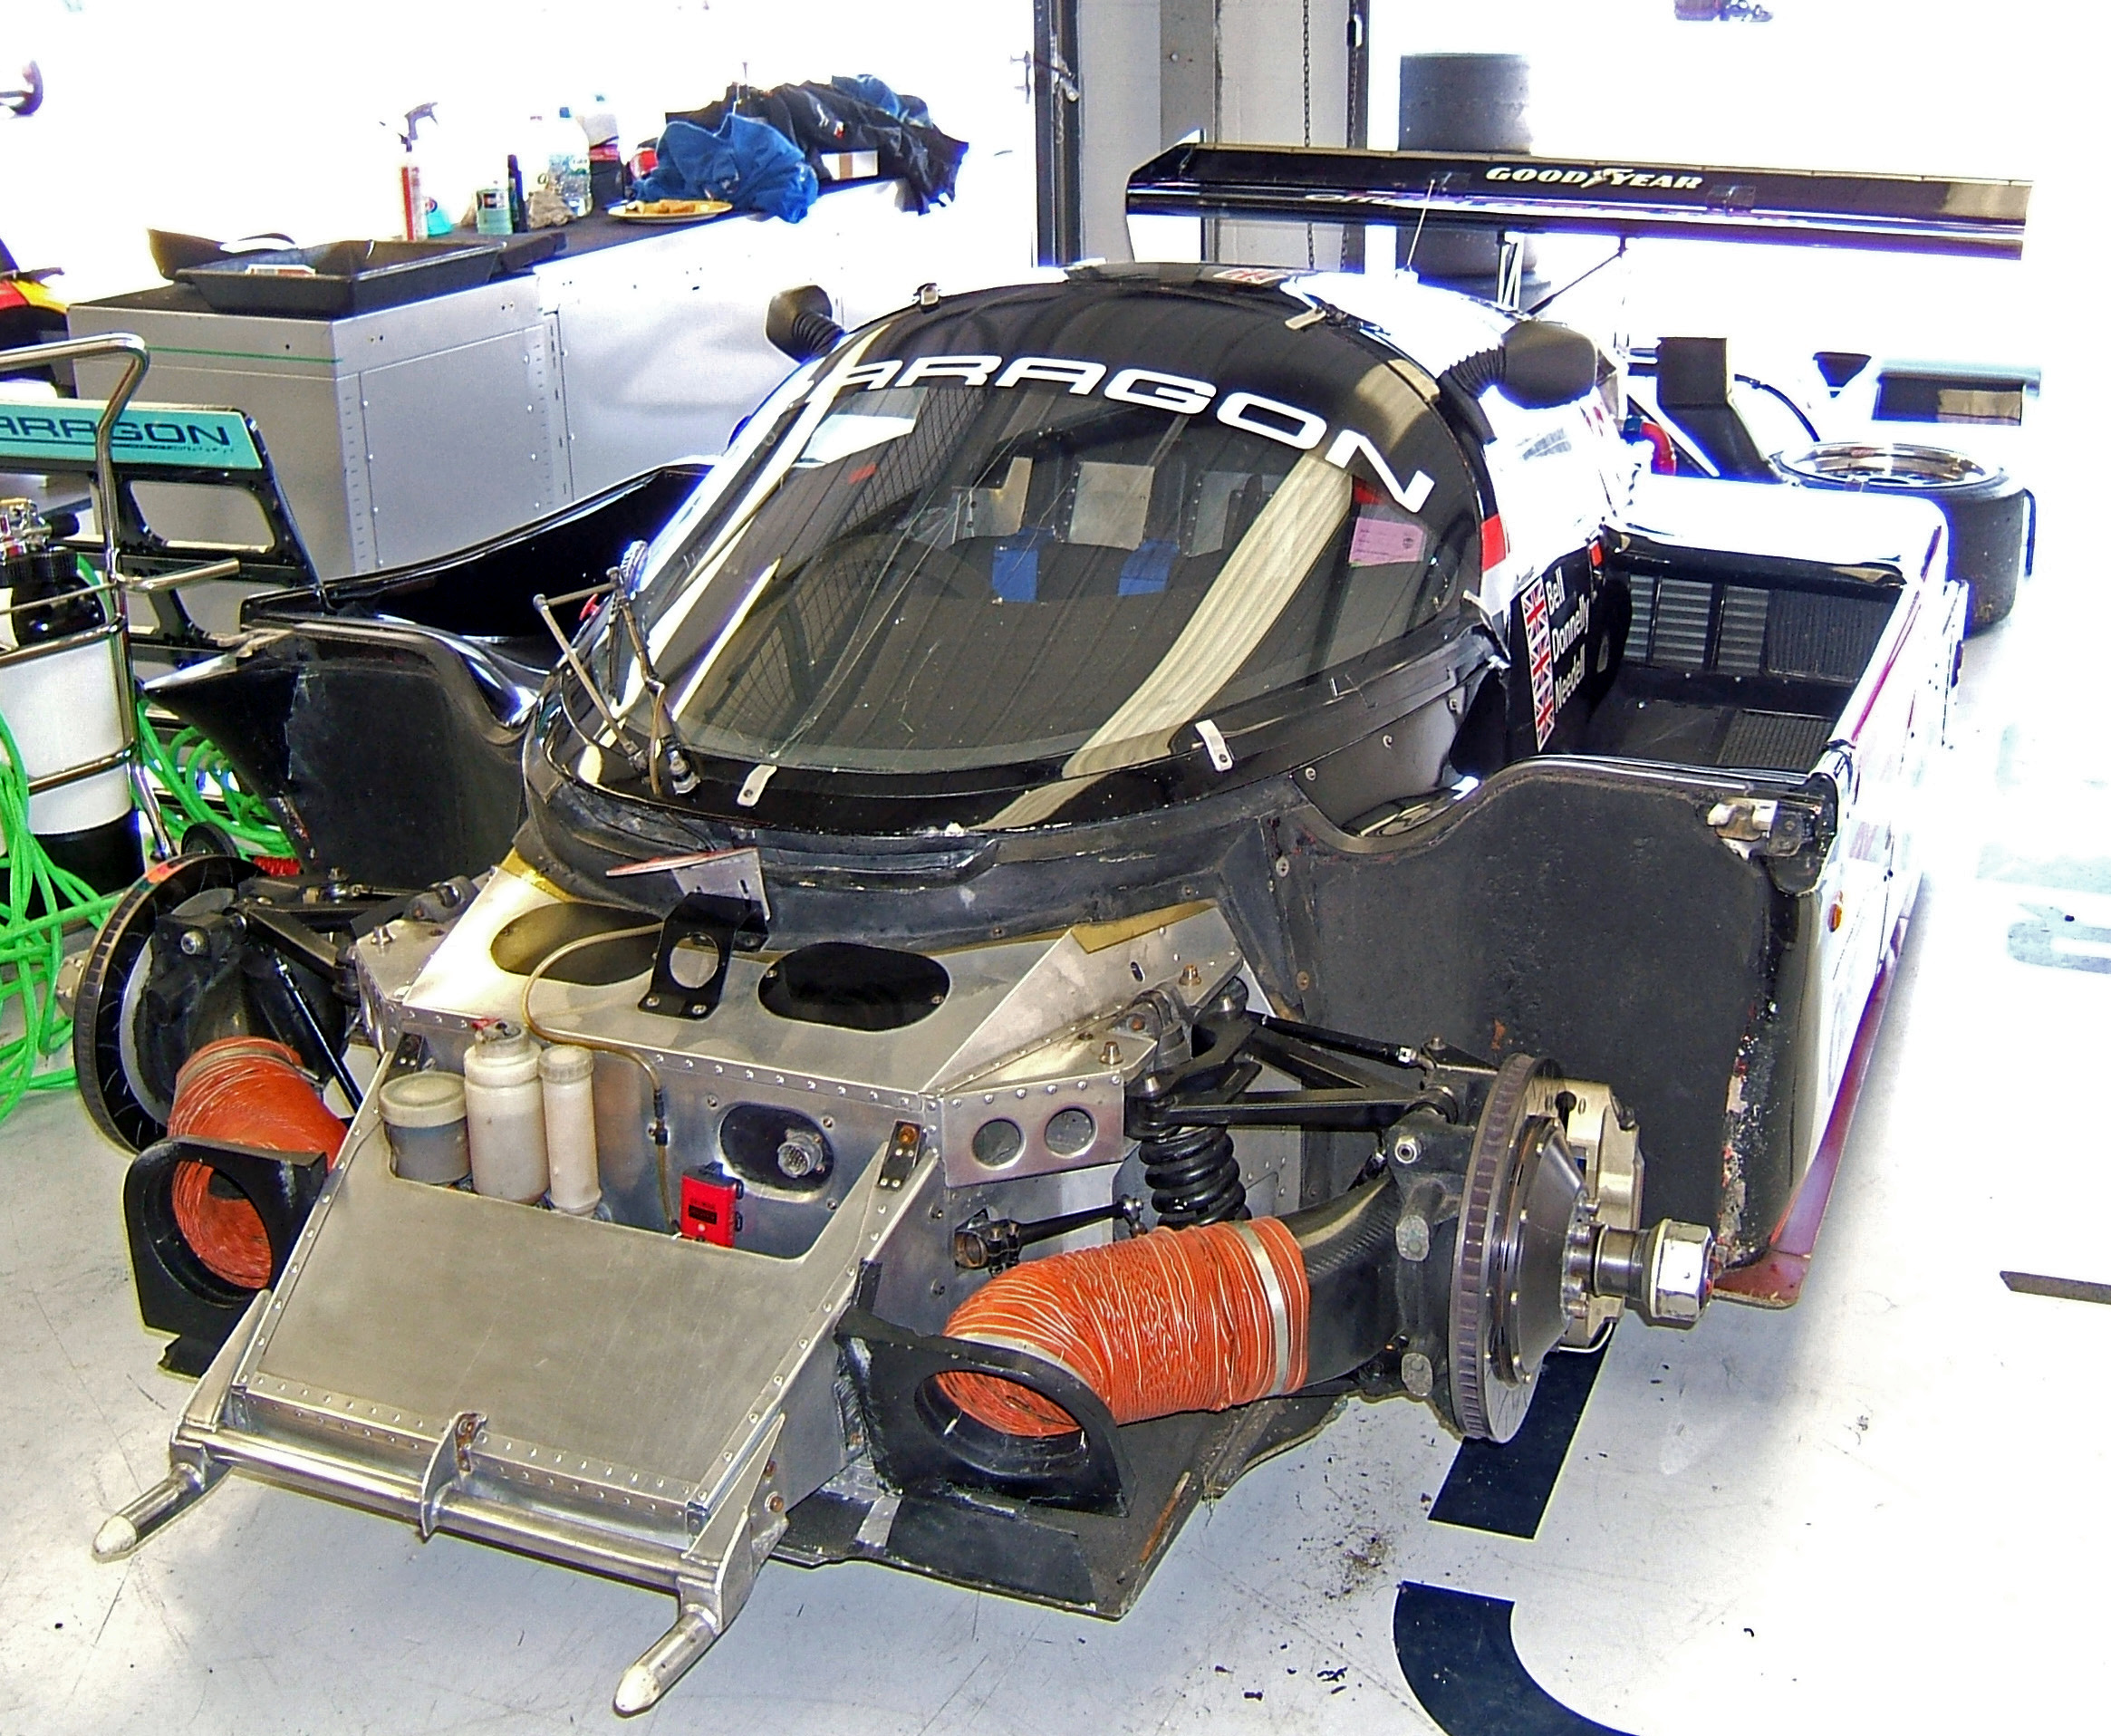 Porsche_962C_without_nose.jpg